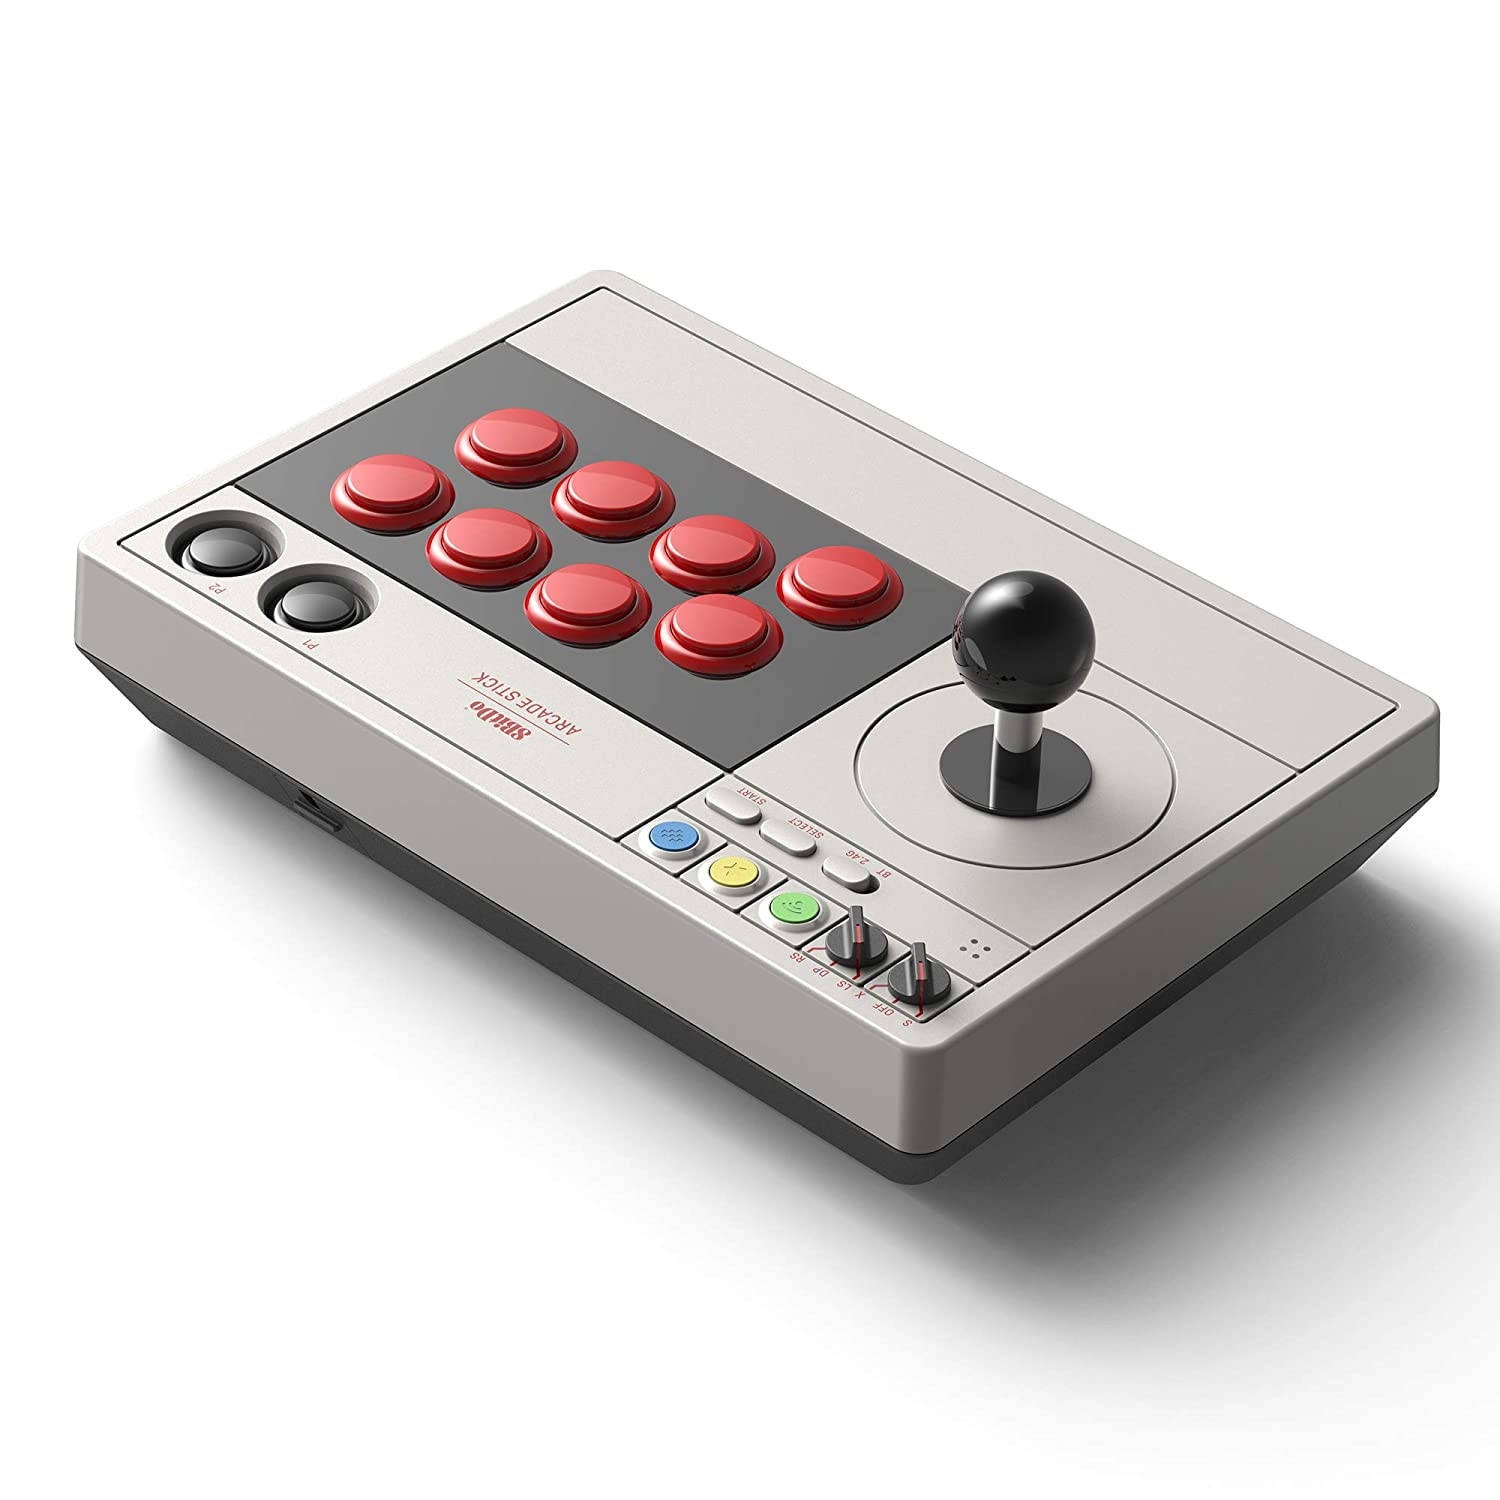 Arcade-style controller with a large joysticks and buttons.